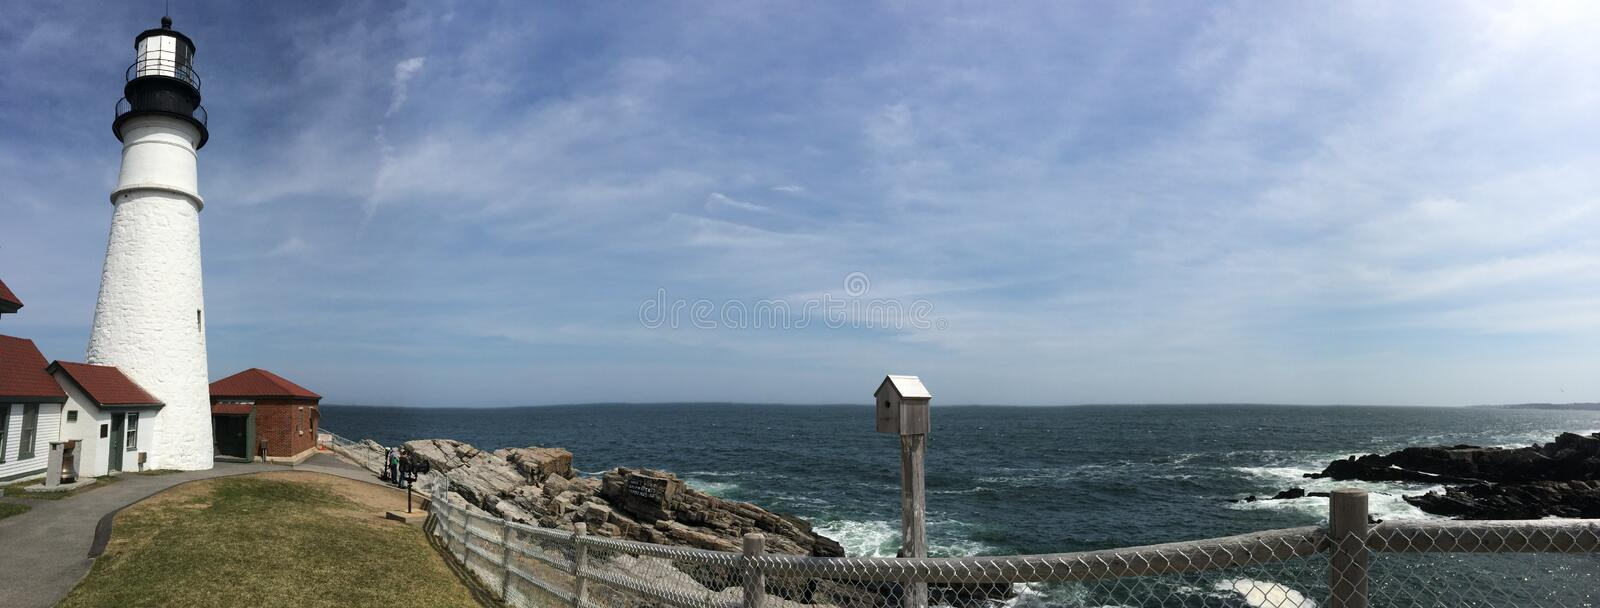 Forte Williams, Portland Maine Headlight-Panoramic View foto de stock